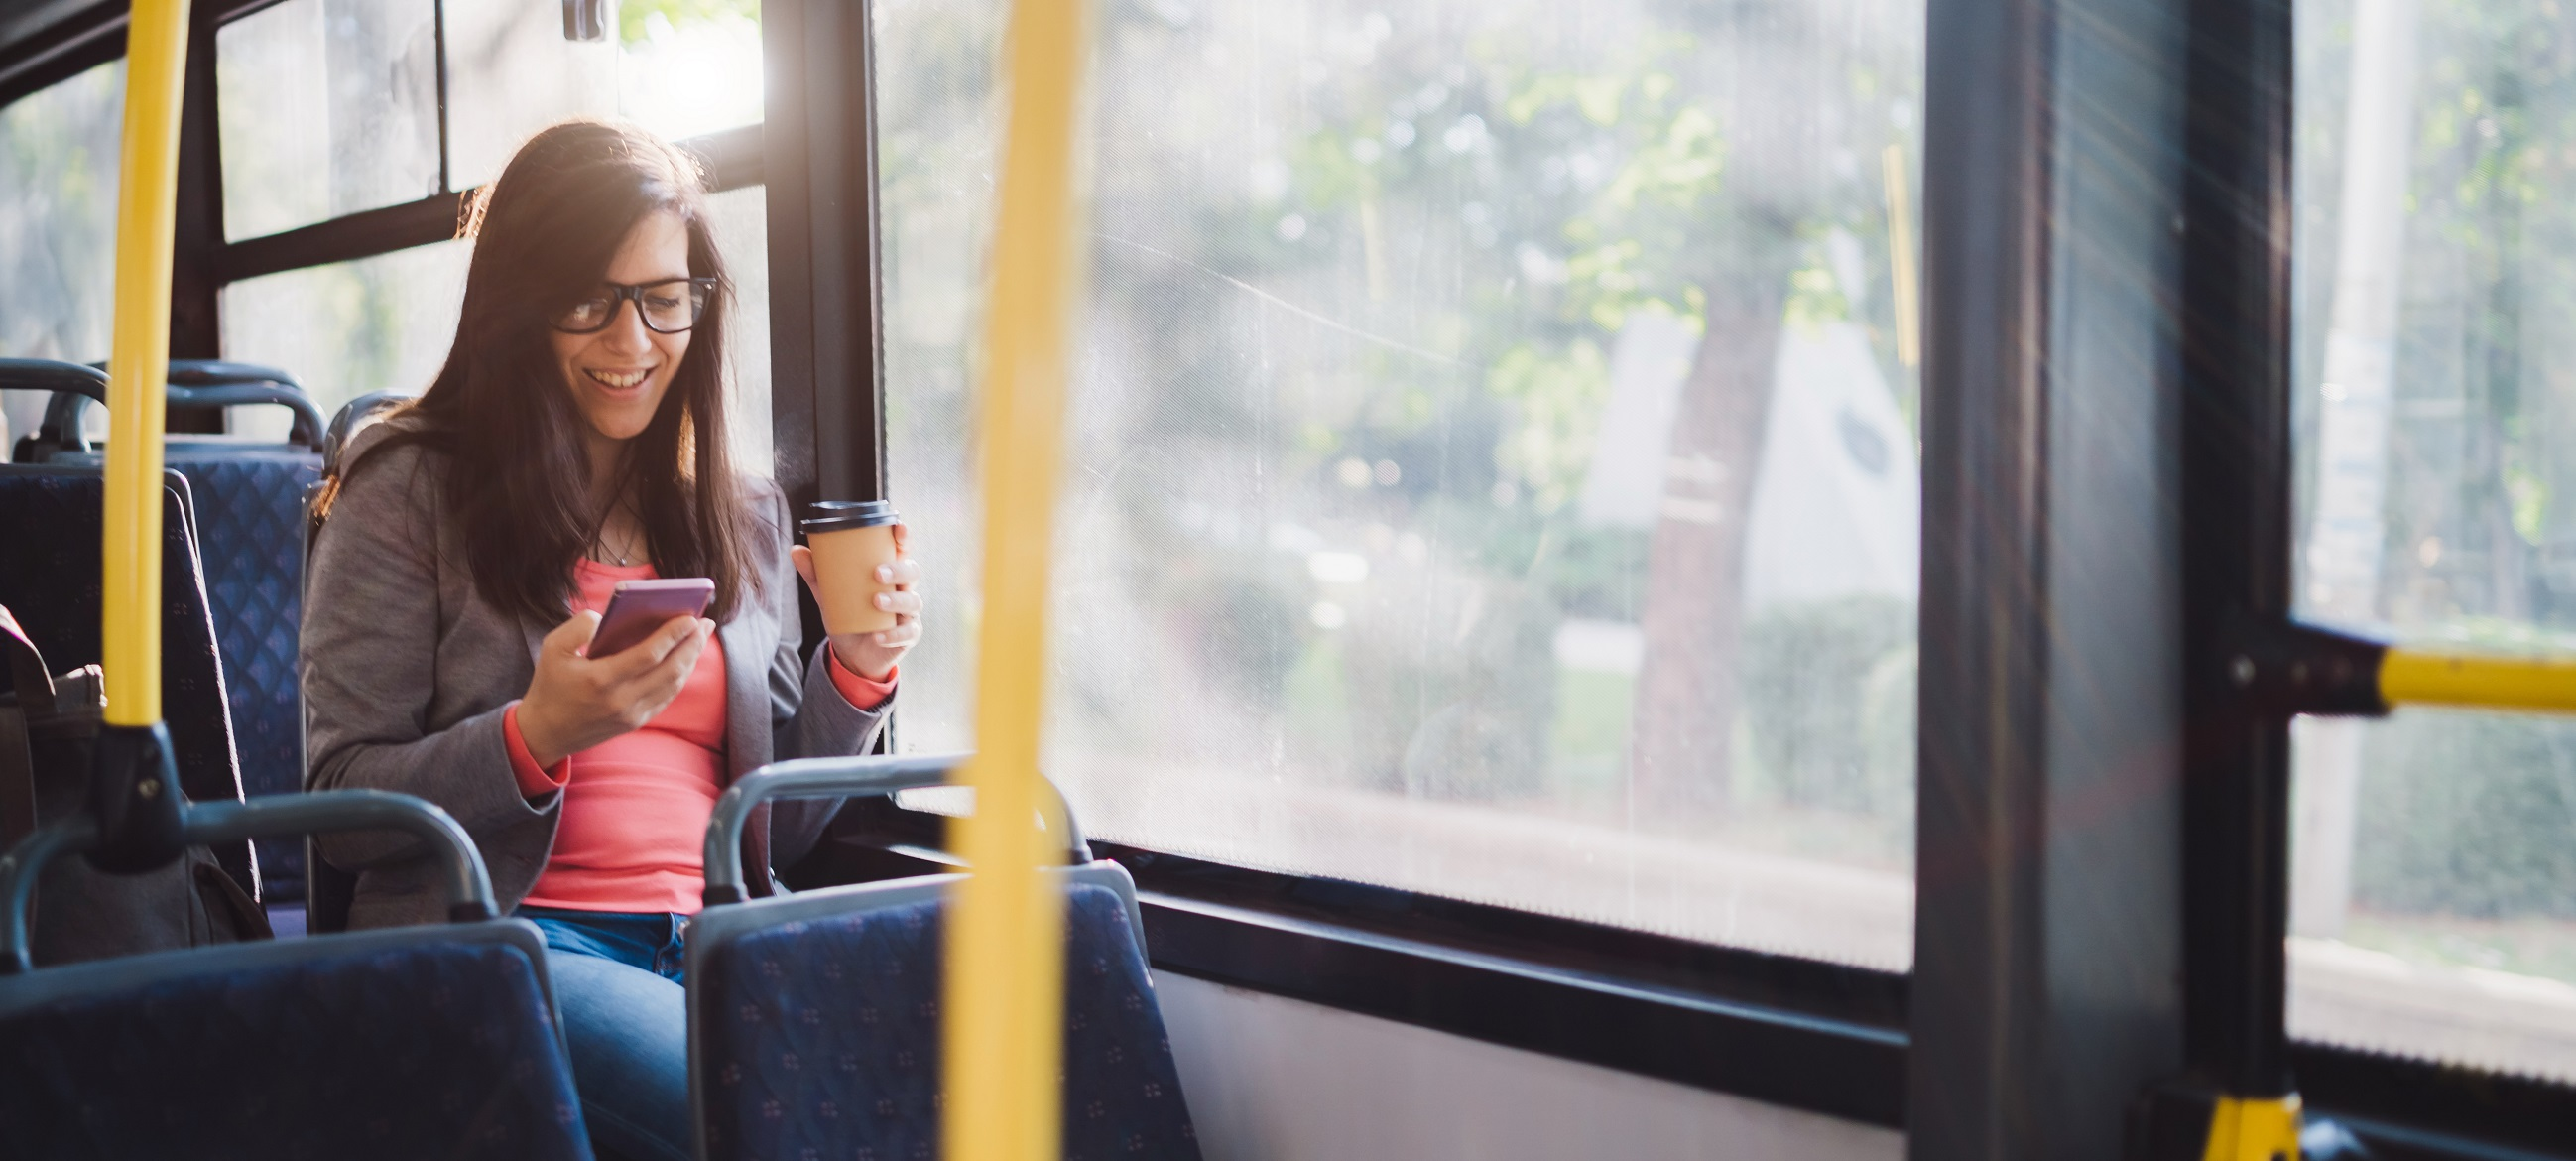 woman_bus_smartphone_coffee